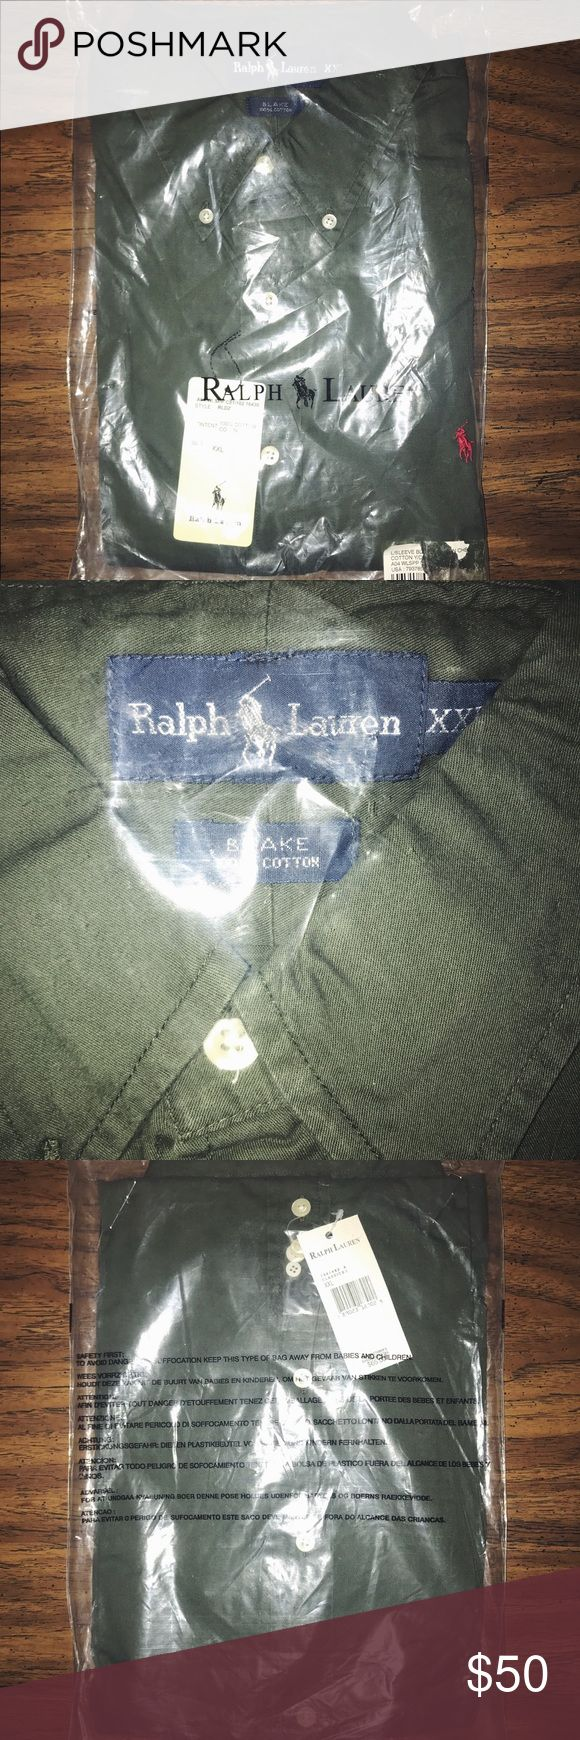 BRAND NEW! Men's XXL Polo Dress Shirt! Im selling a men's XXL green Polo dress shirt! 100% cotton! BRAND NEW! TAGS STILL ON! STILL IN PACKAGING! I am very accepting of offers! Polo by Ralph Lauren Shirts Dress Shirts